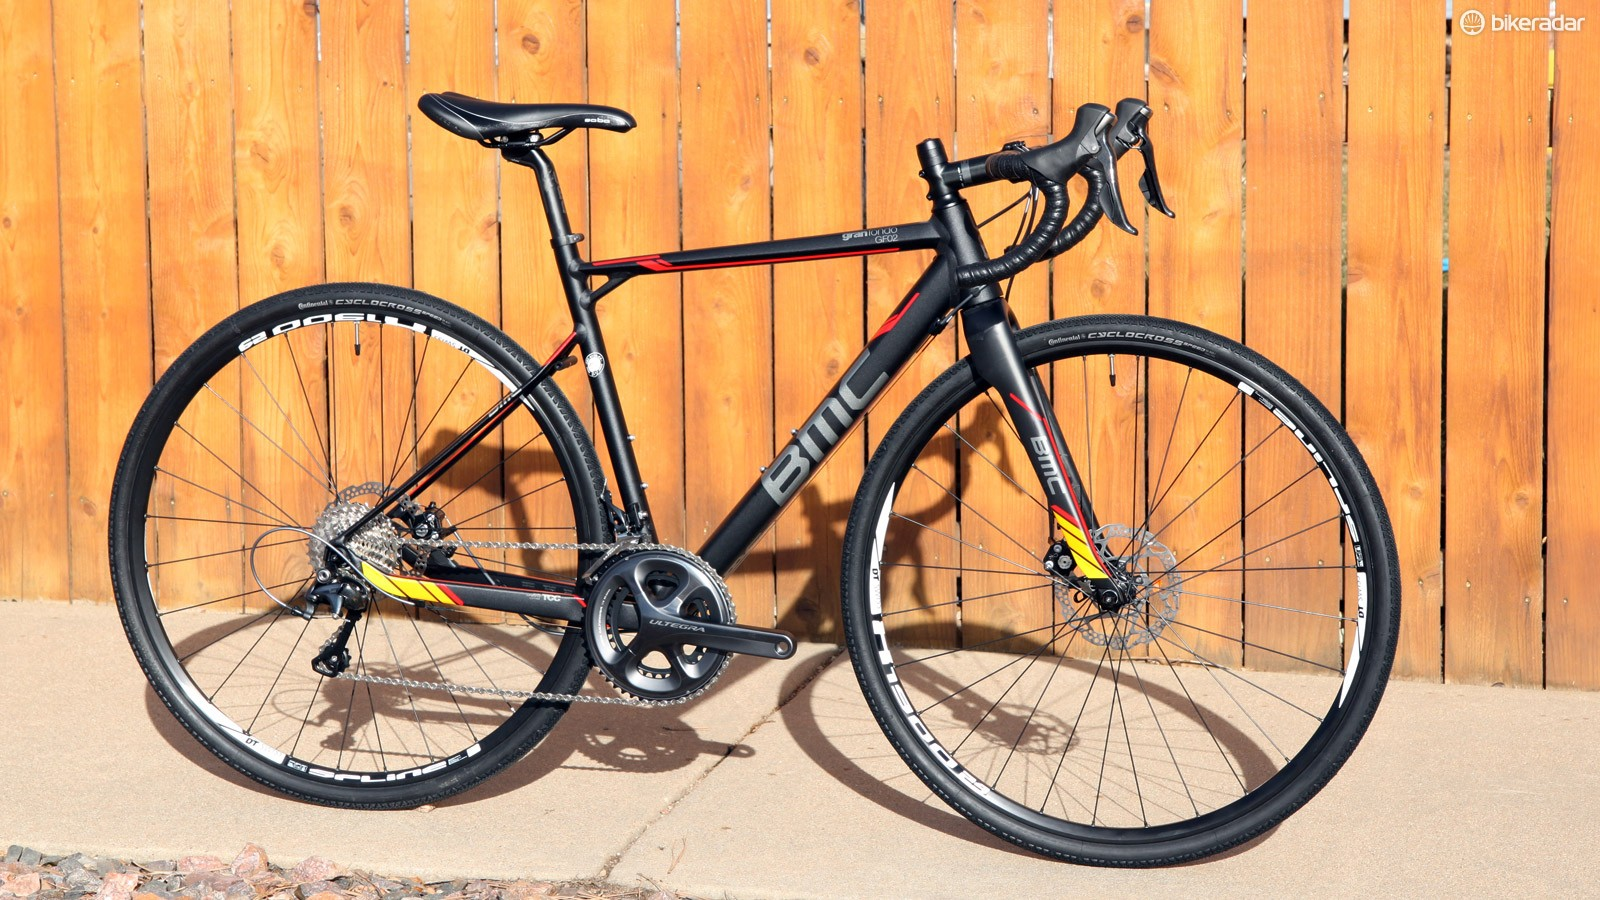 BMC's GranFondo GF02 is part road bike, part 'cross bike, and part touring bike - and supremely versatile as a result